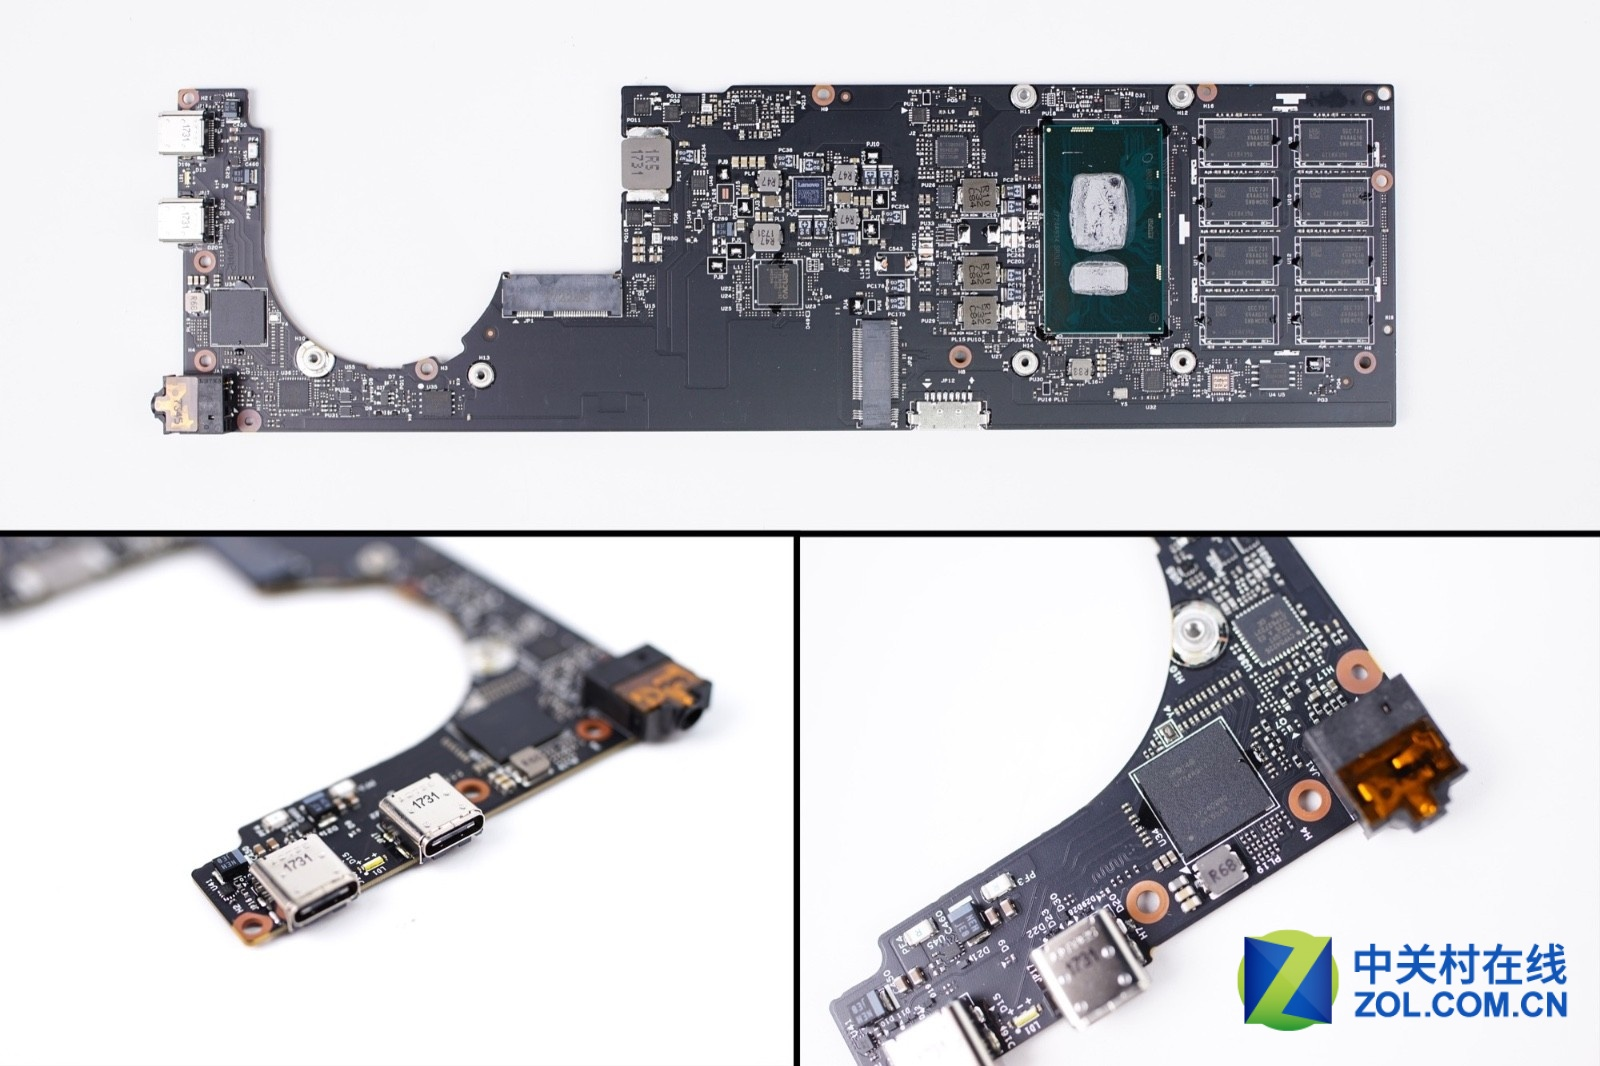 Lenovo Yoga 920 Disassembly (SSD, RAM Upgrade Options